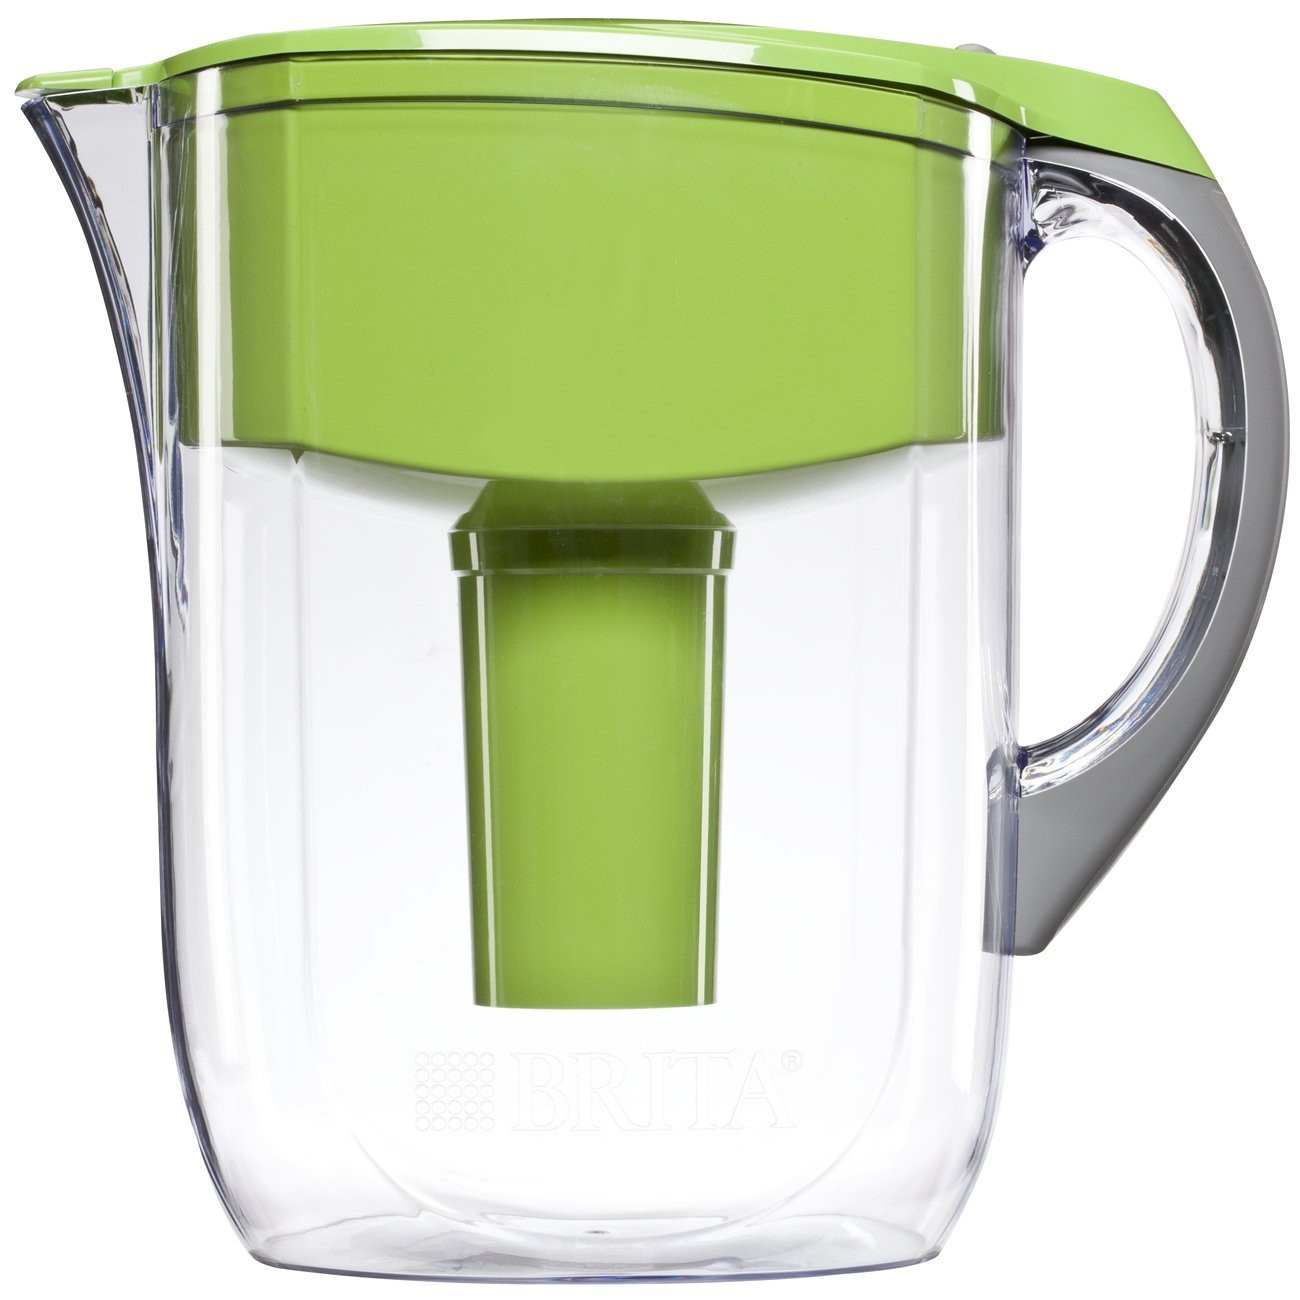 Brita Grand Water Filter Pitcher 10 Cup